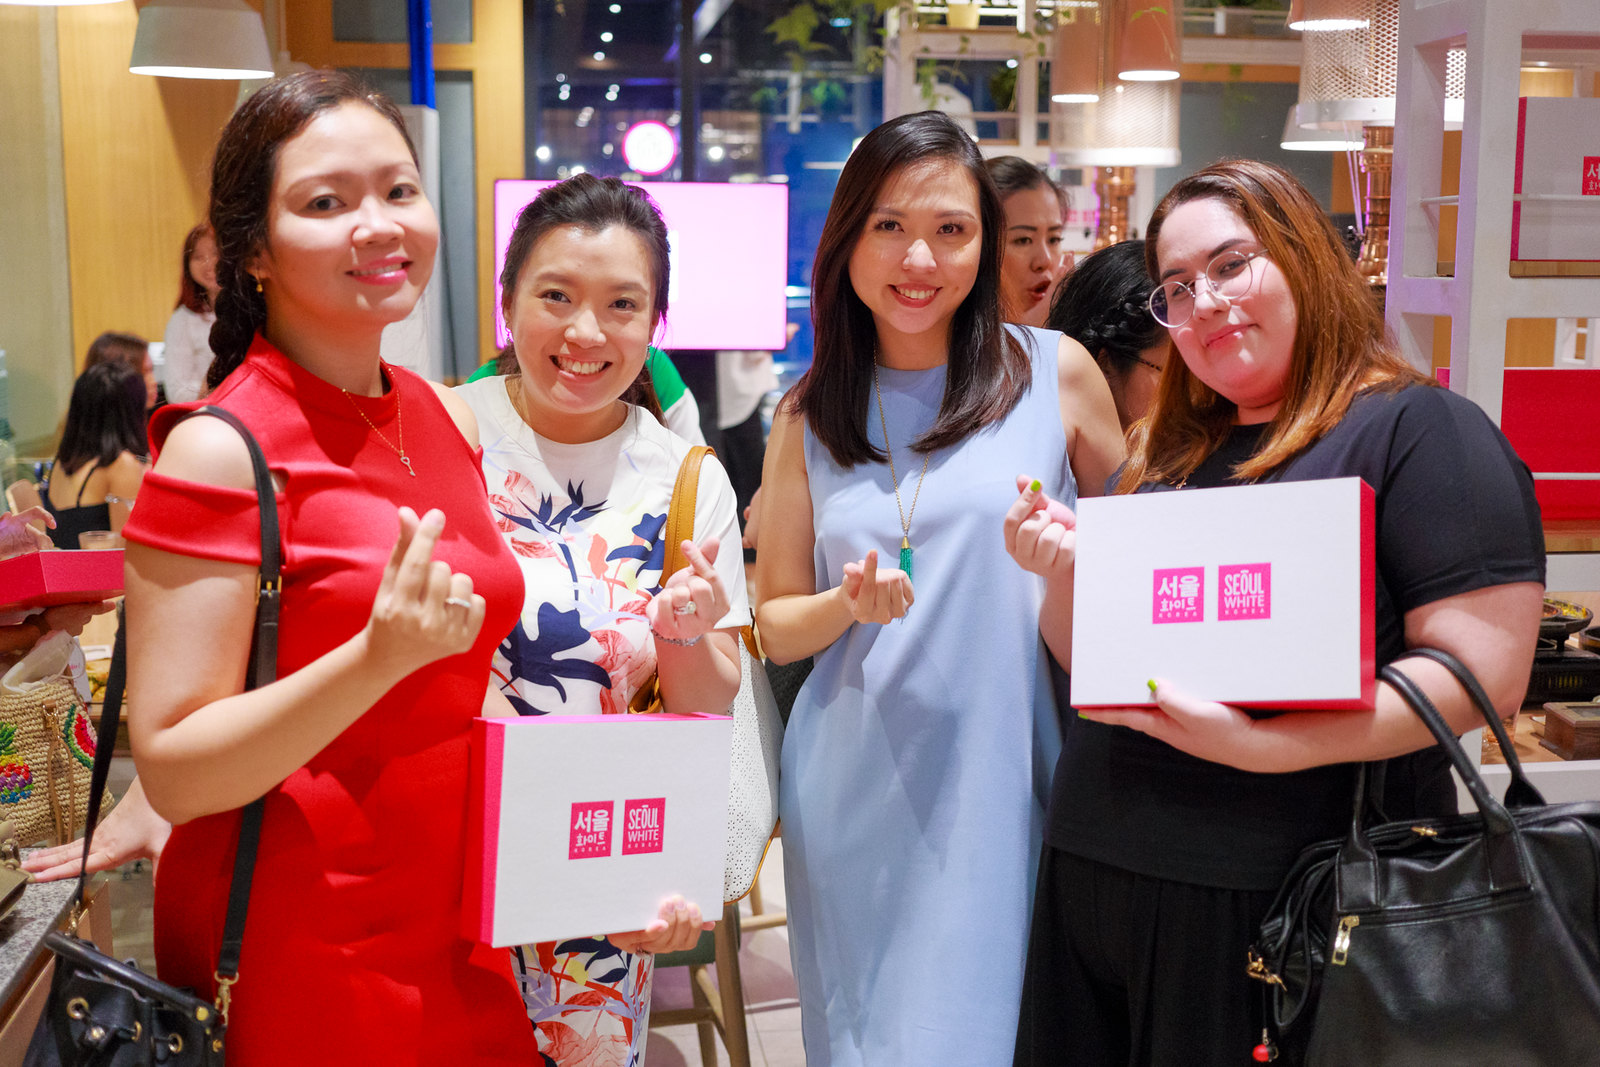 With one of the co-founders of SampleRoomPH Nathalie Toh, Seoul White Korea co-owner Jacque and blogger Ari Yupangco